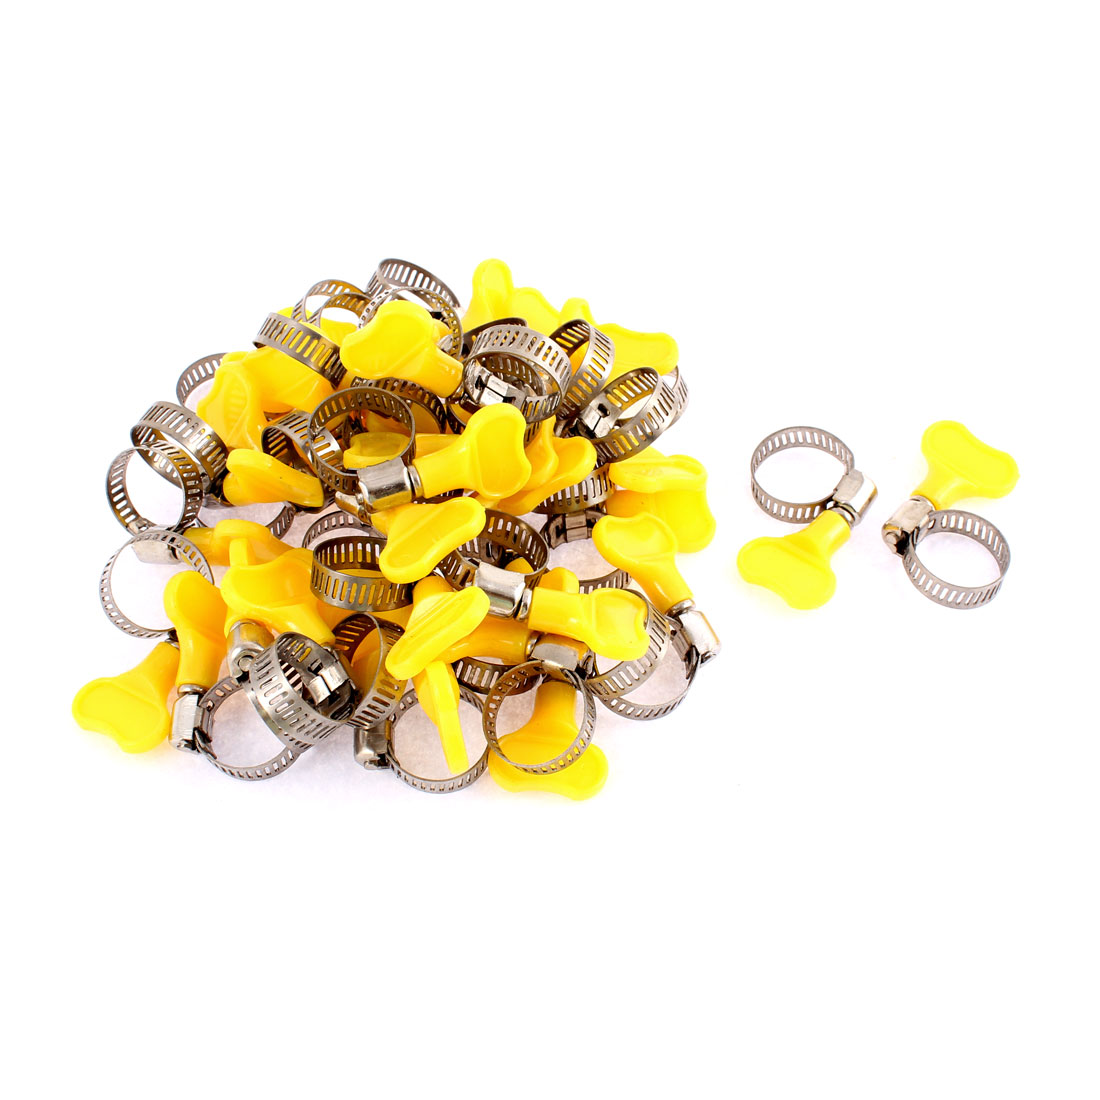 Adjustable 13-19mm Clamping Range 8mm Band Width Worm Drive Hose Clamps 40Pcs